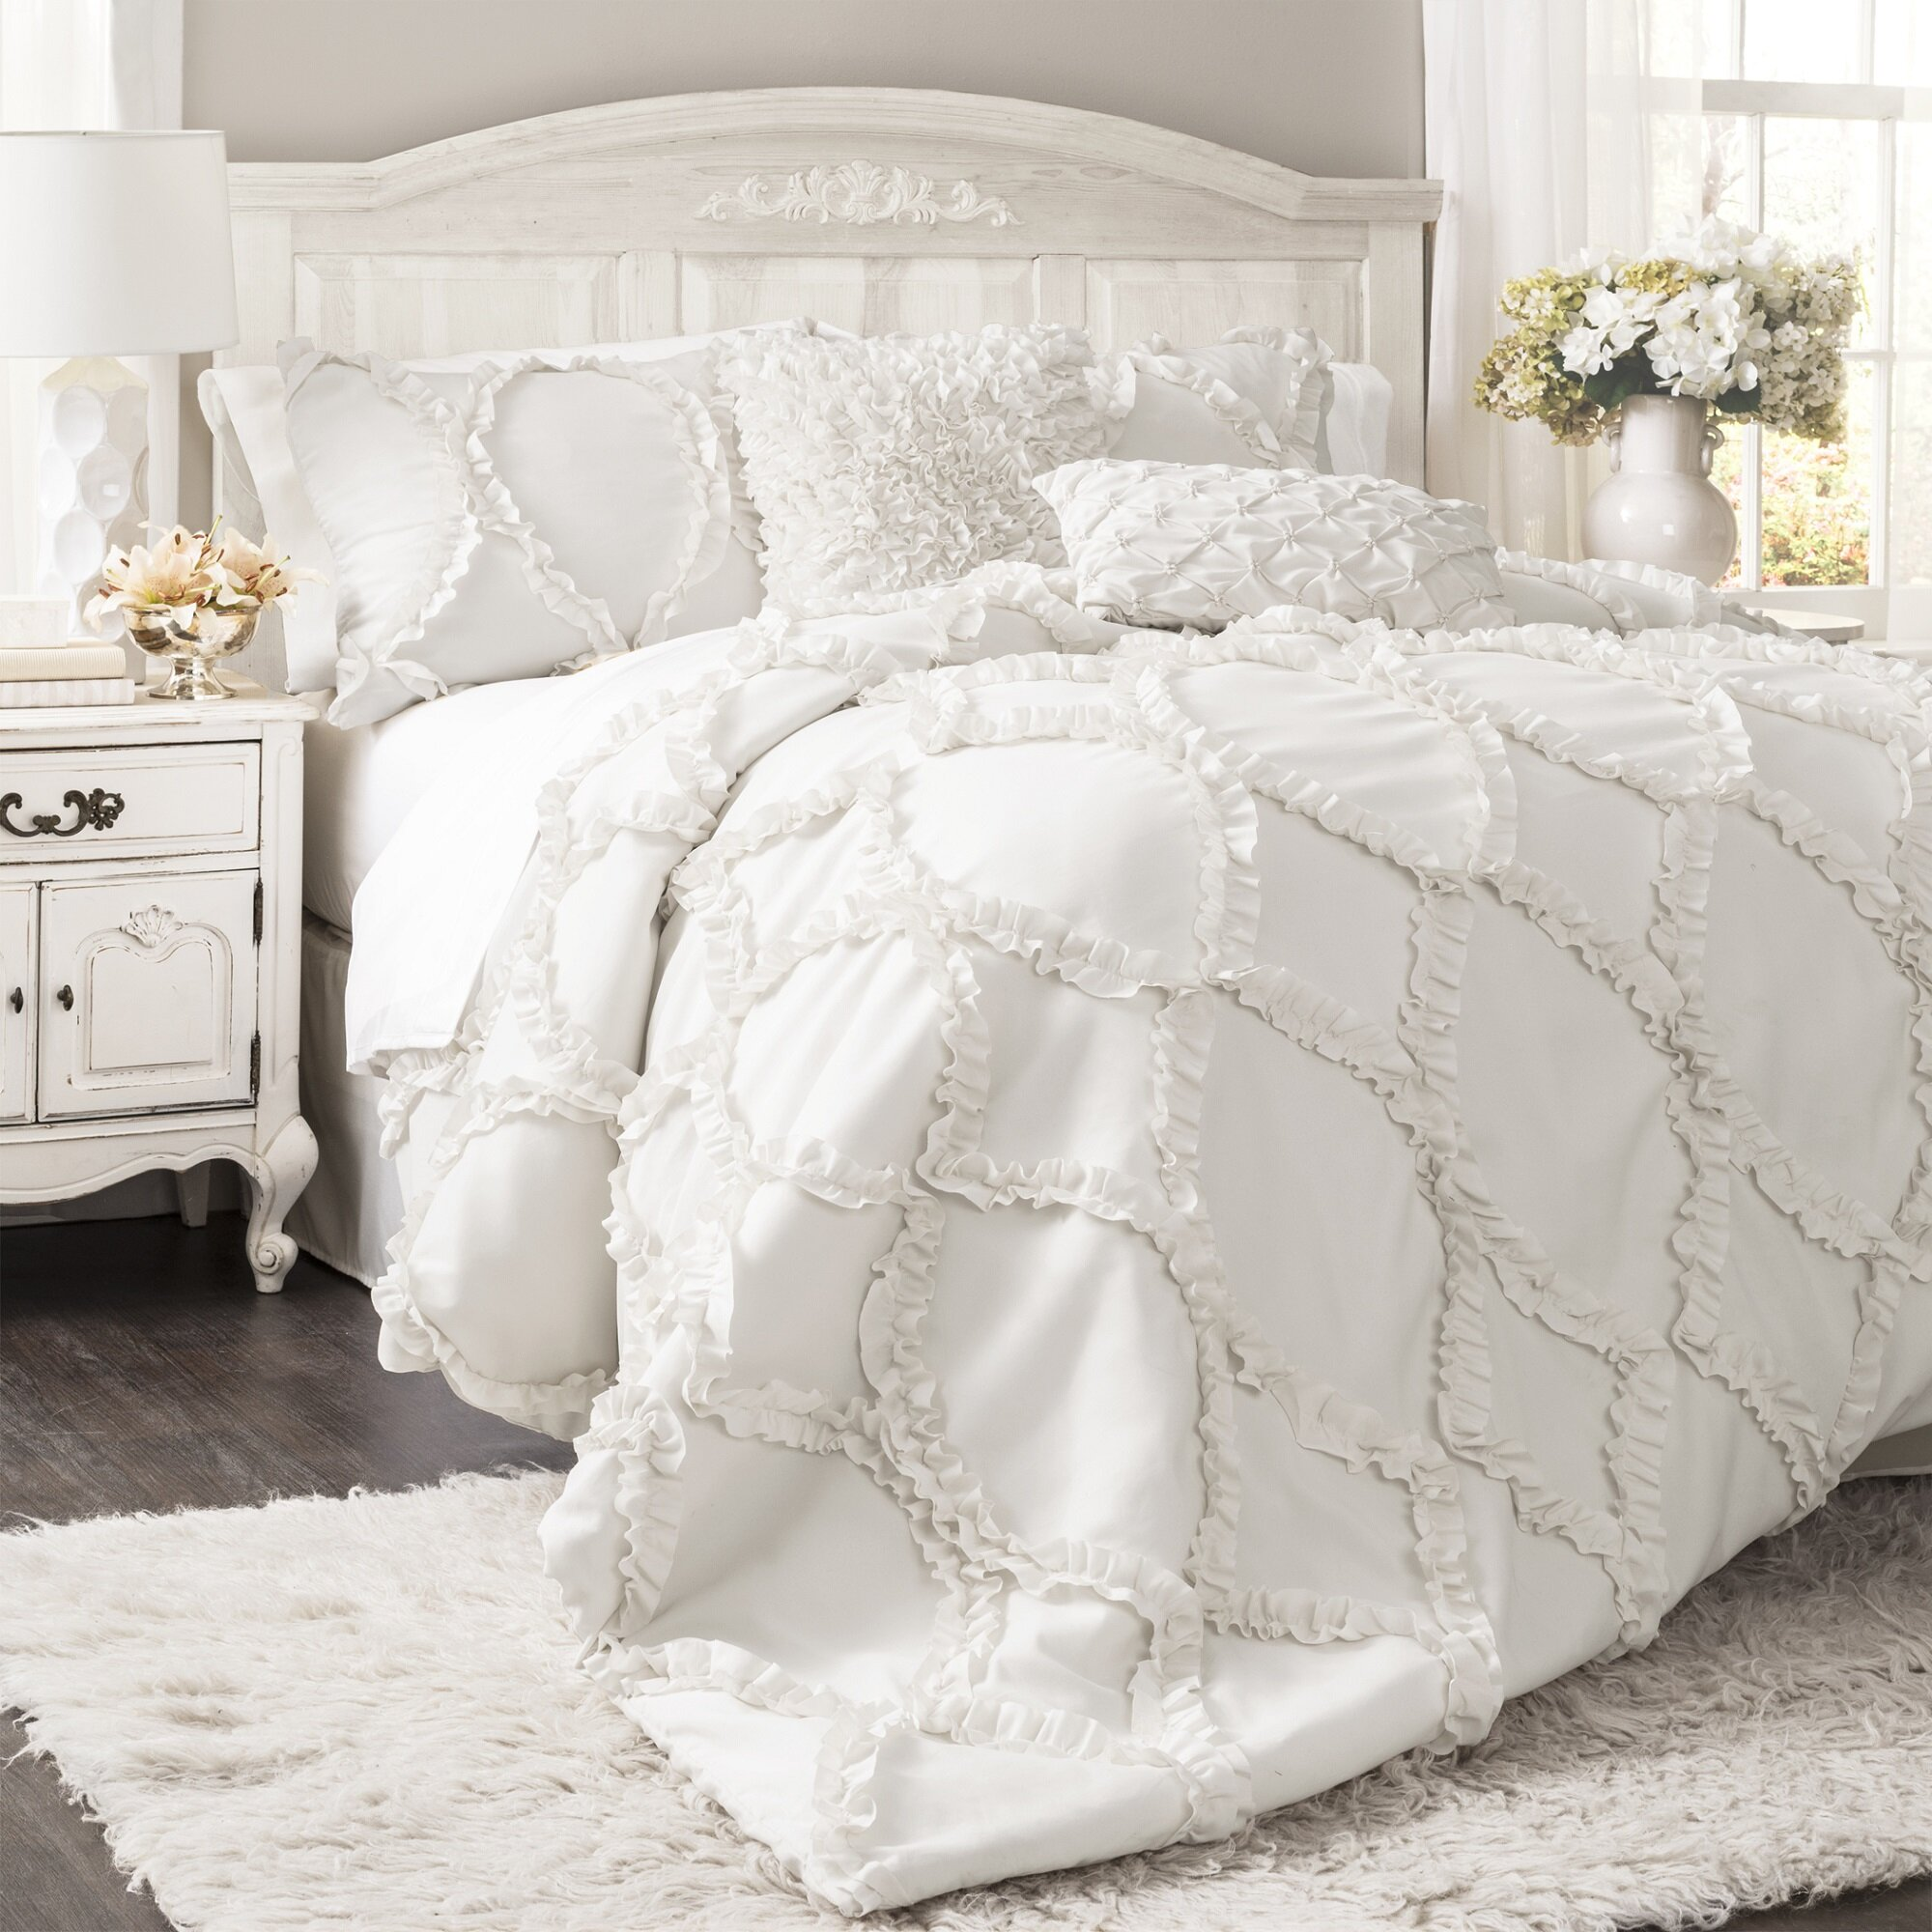 The Twillery Co Erion 3 Piece Comforter Set Reviews Wayfair